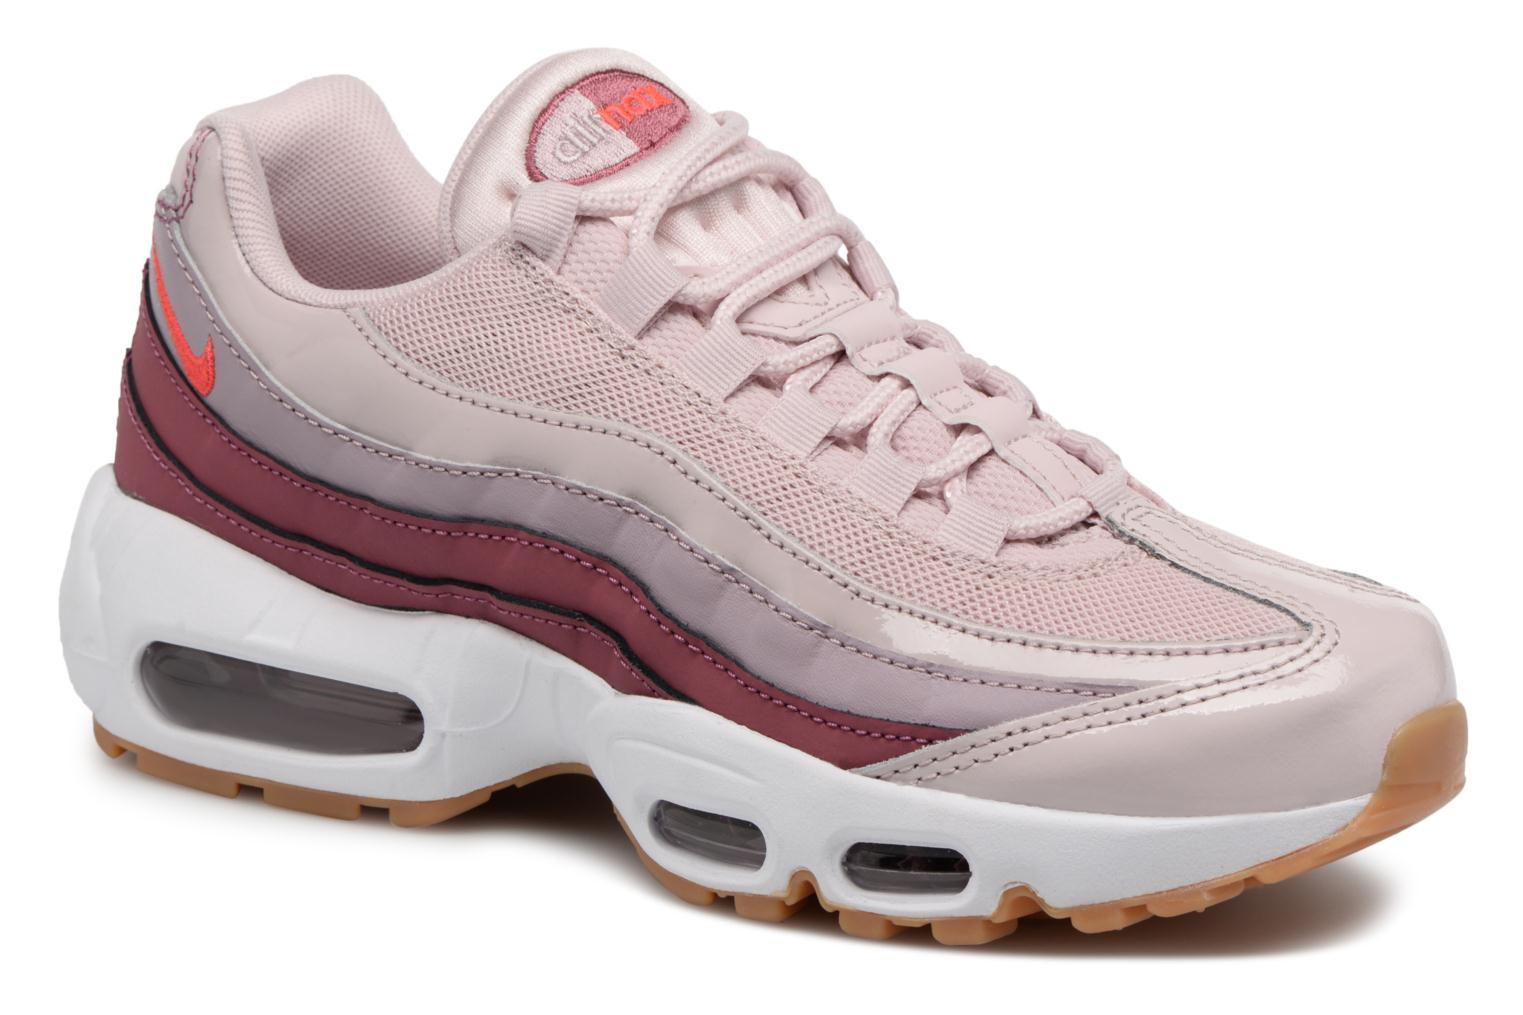 Wmns Air Max 95 Barely Rose/Hot Punch-Vintage Wine-White